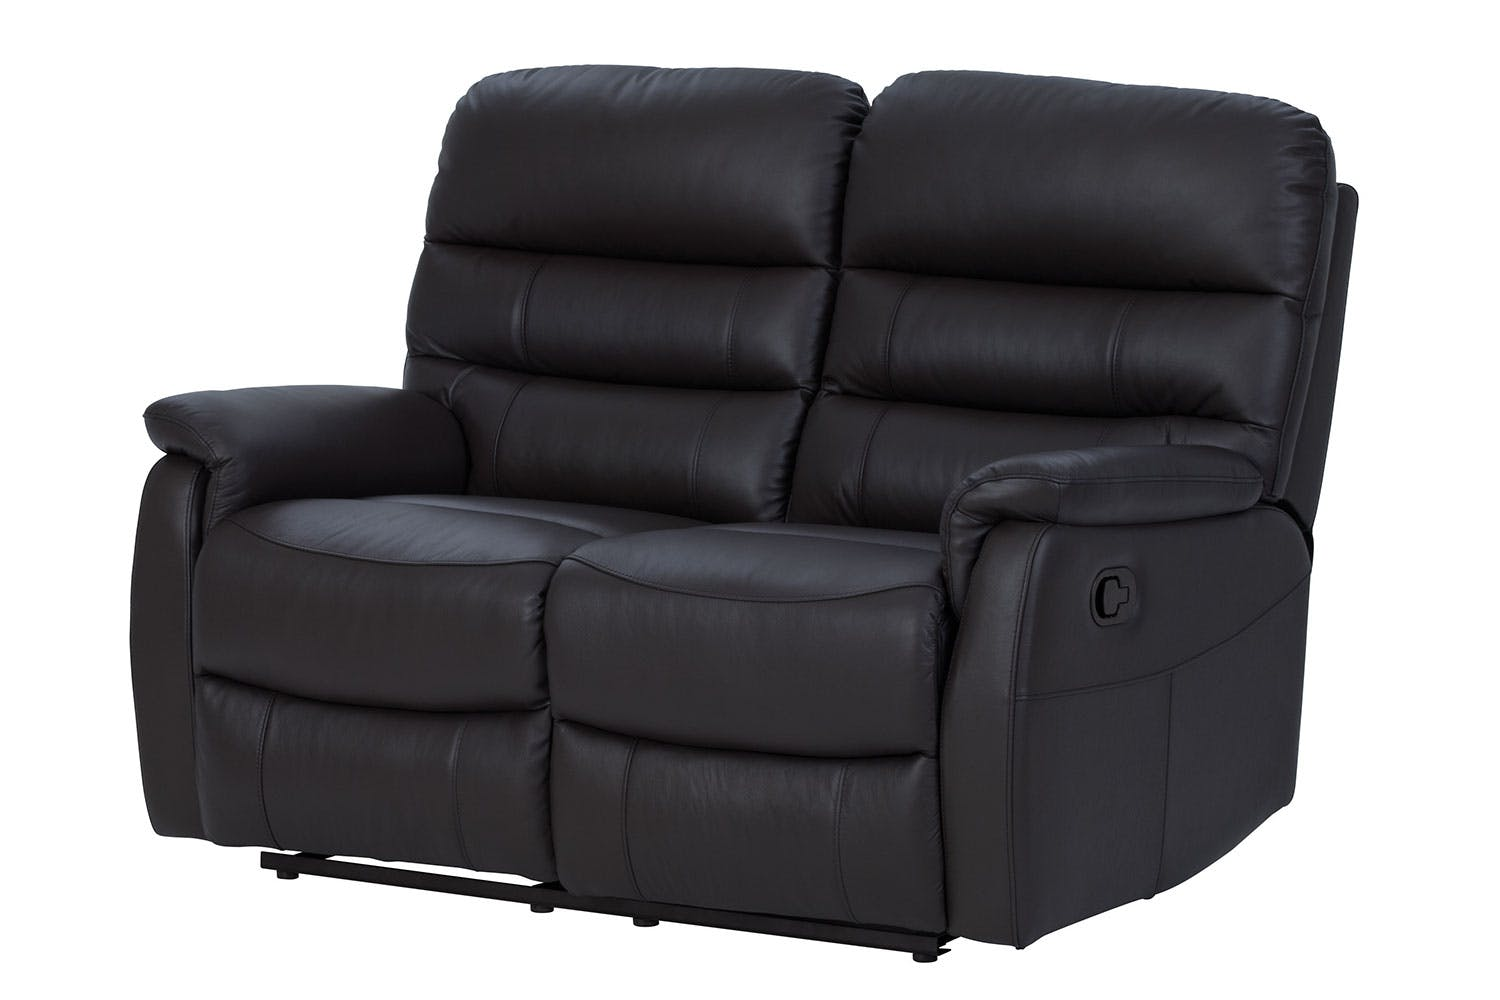 Luna 2 Seater Leather Recliner Sofa by Vivin